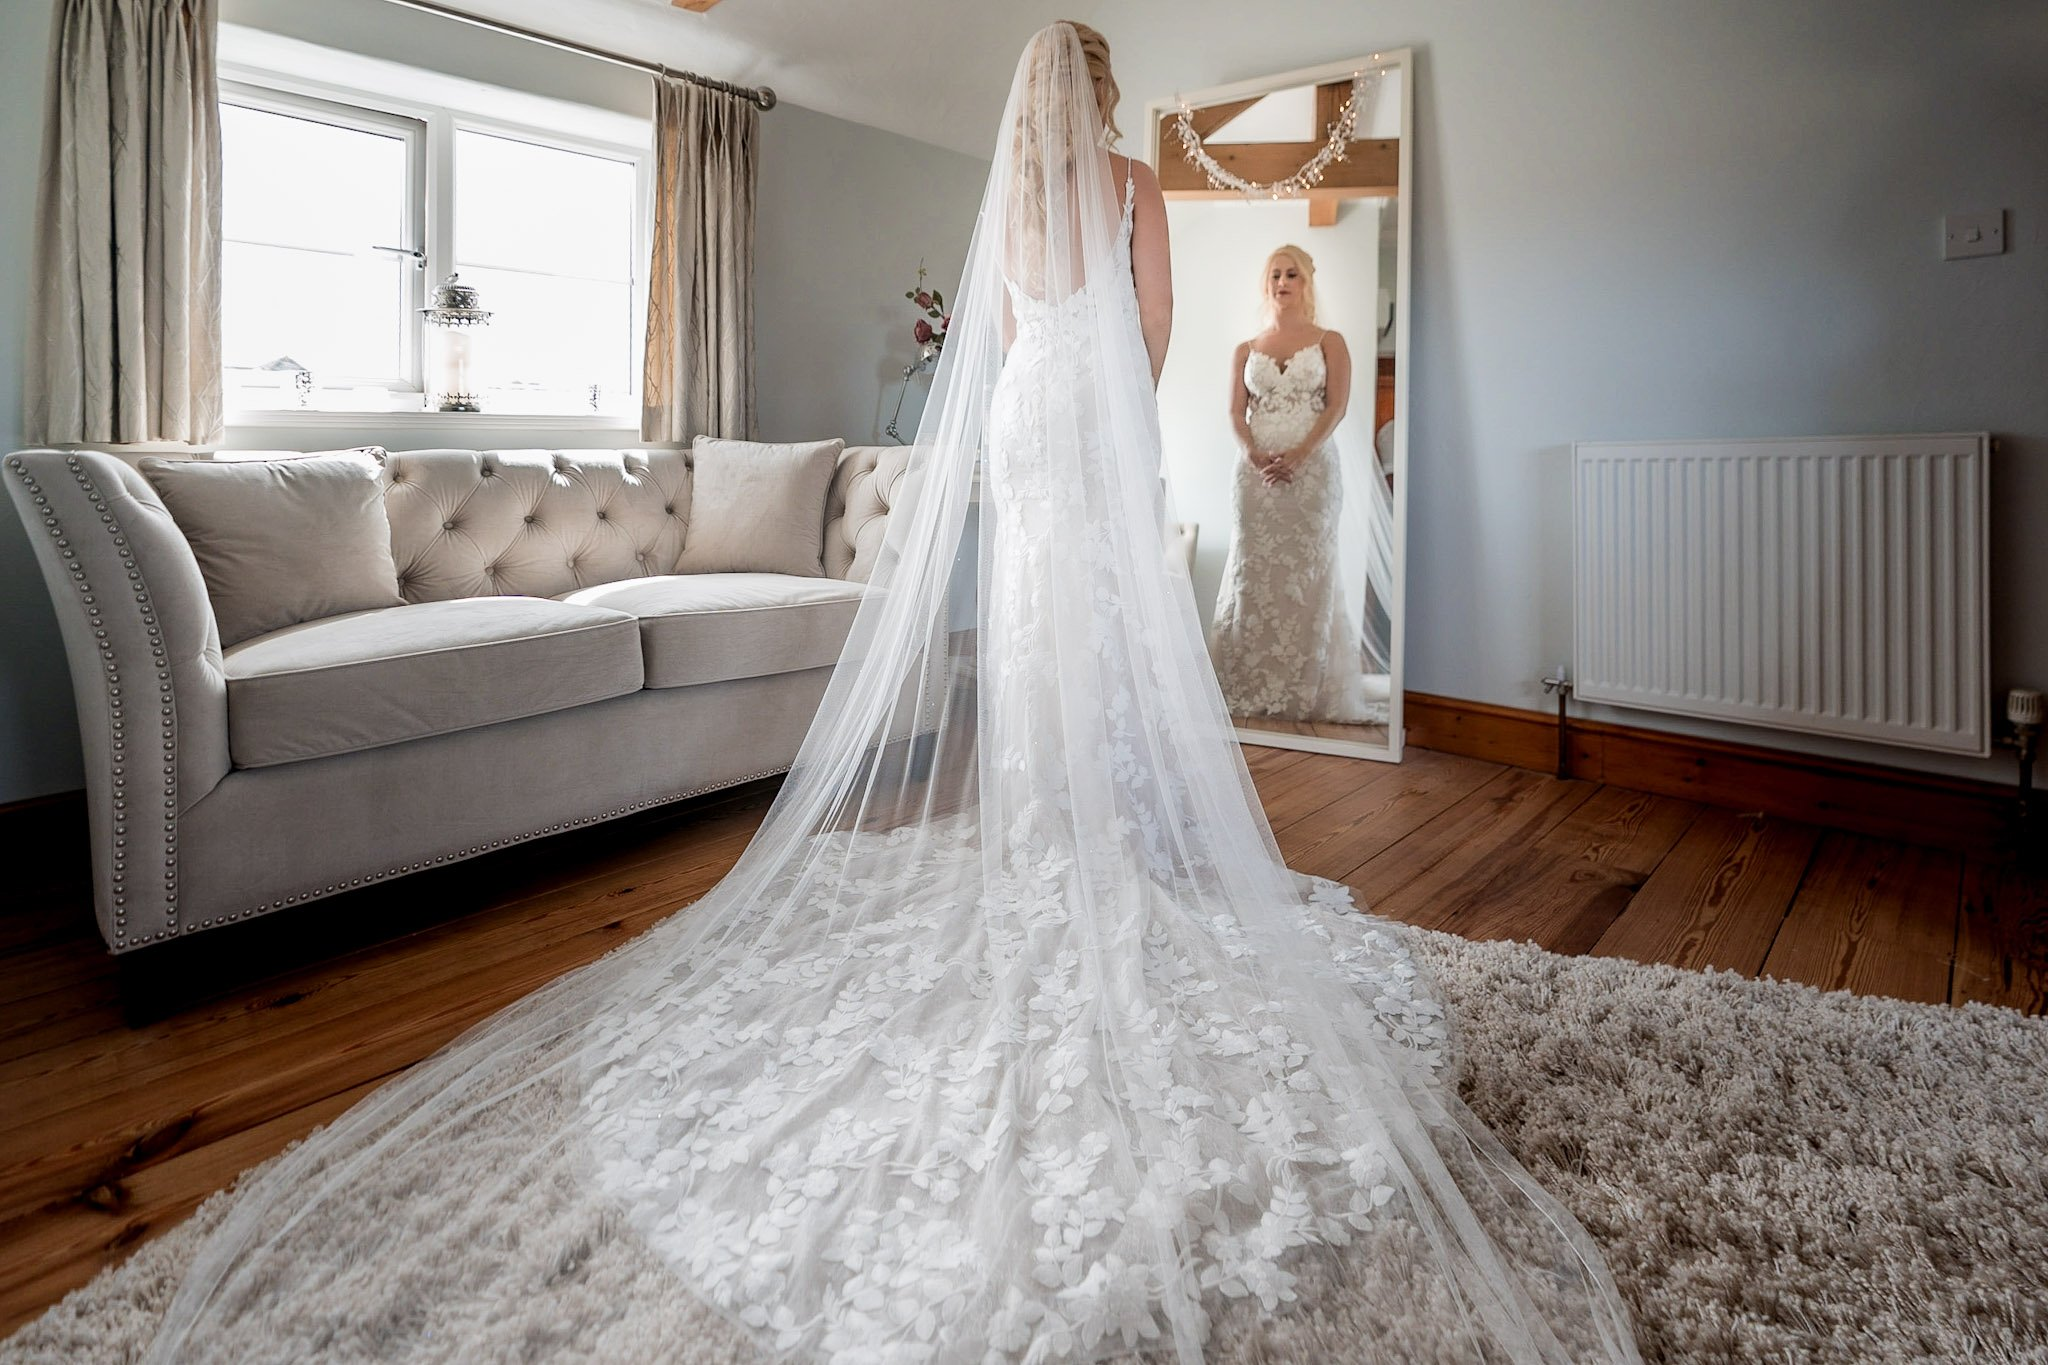 Your Favourite Frame YFFUK Mwasuku Norton Fields Atherstone bride in the bridal suite looking into the mirror with her dress and veil showing all the details on the back